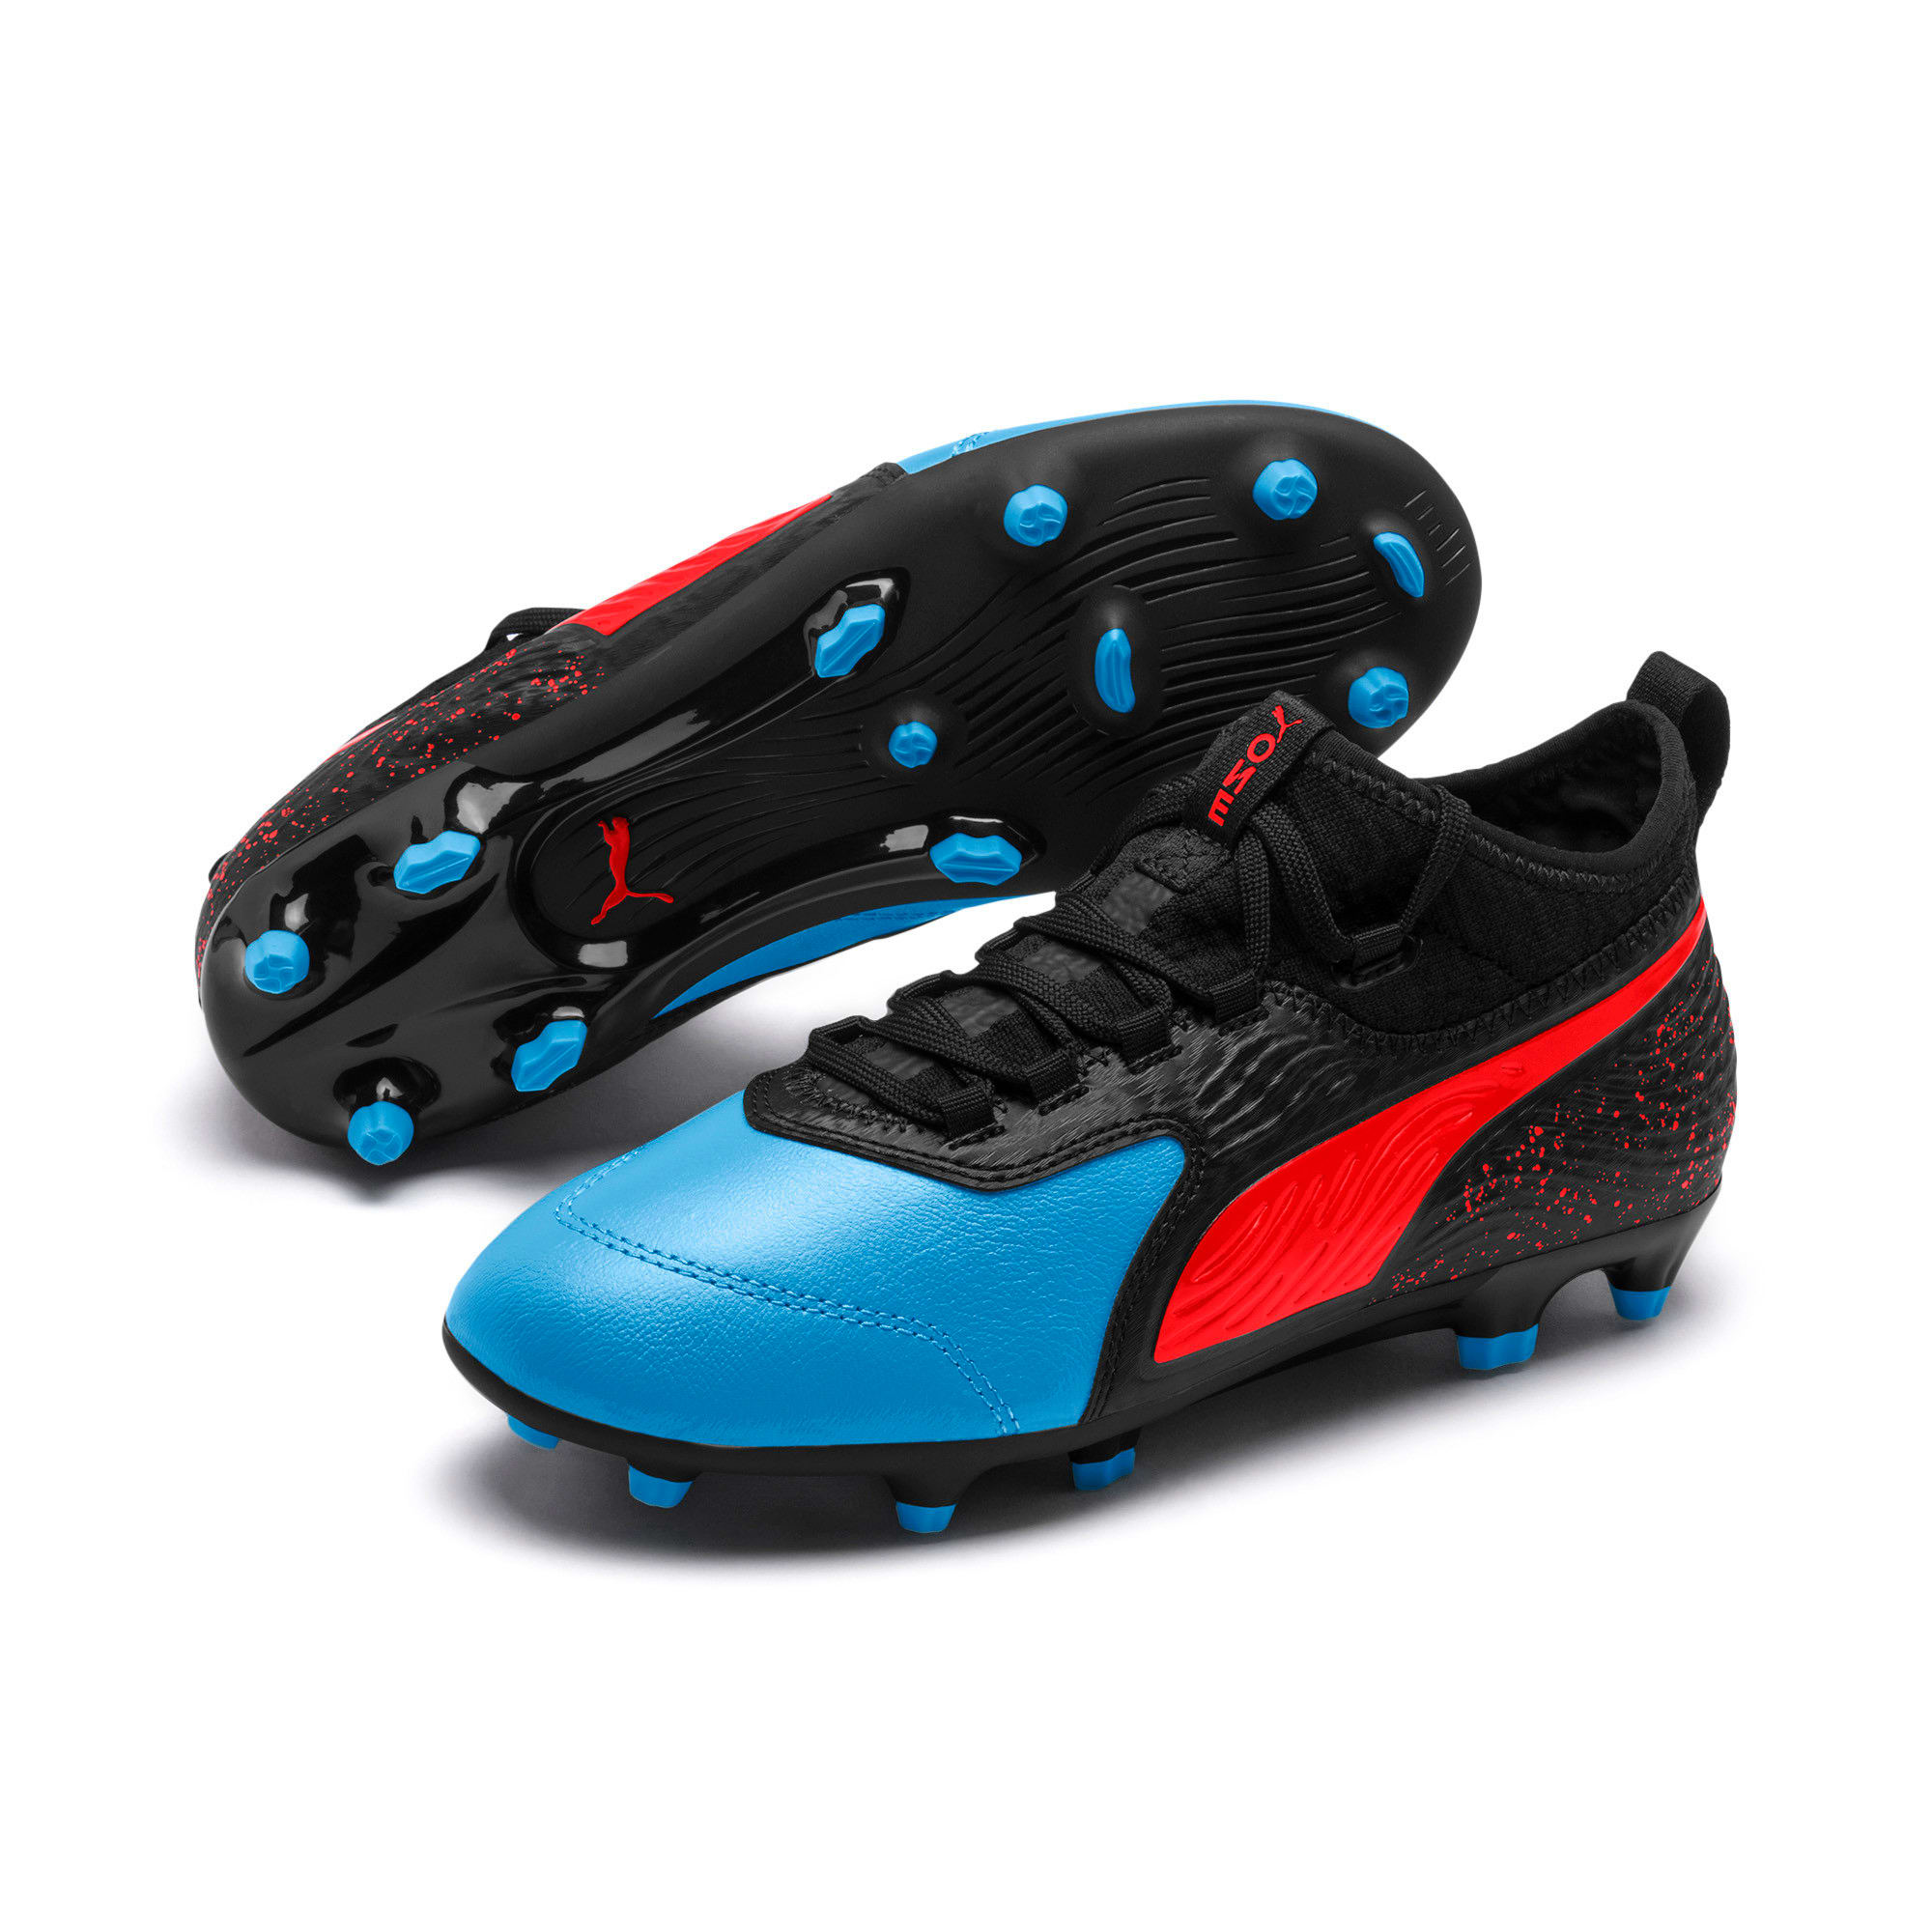 Thumbnail 2 of キッズ プーマ ワン 19.3 FG/AG JR 20-24.5cm, Bleu Azur-Red Blast-Black, medium-JPN